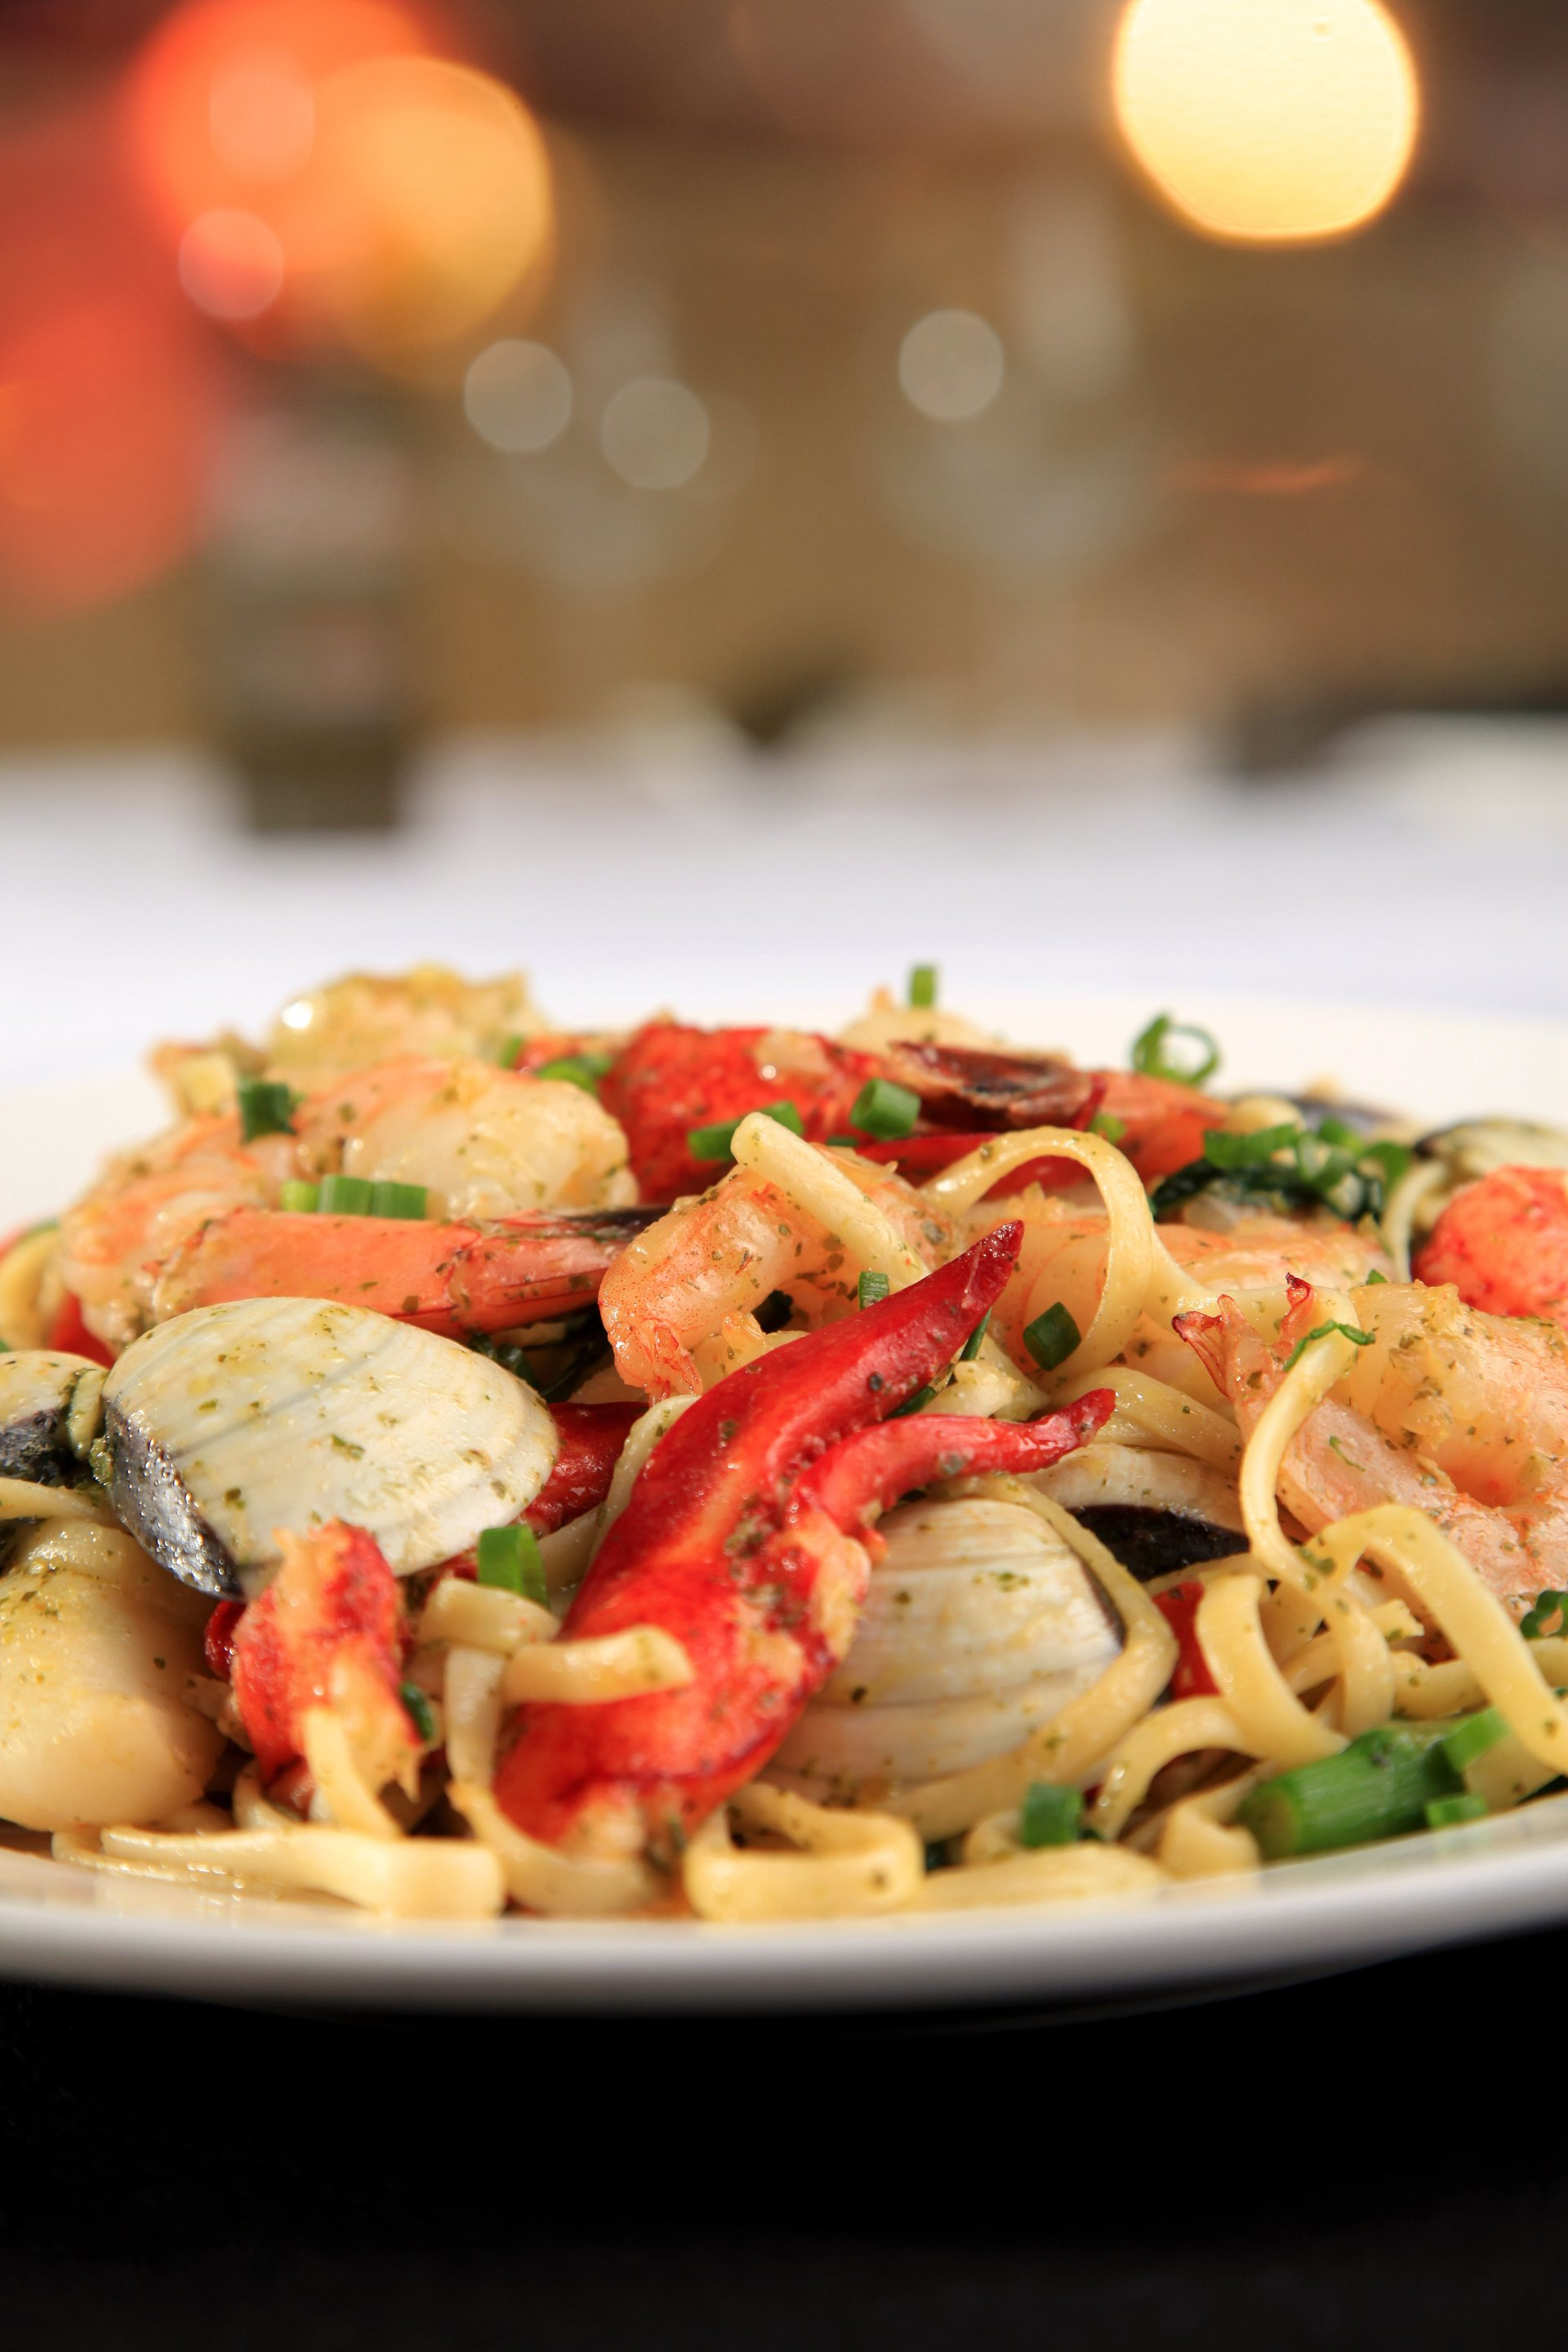 Linguine Pescatore - Shrimp scallops clams and lobster, sautéed with peppers and spinach, with olive oil and hint of pesto.